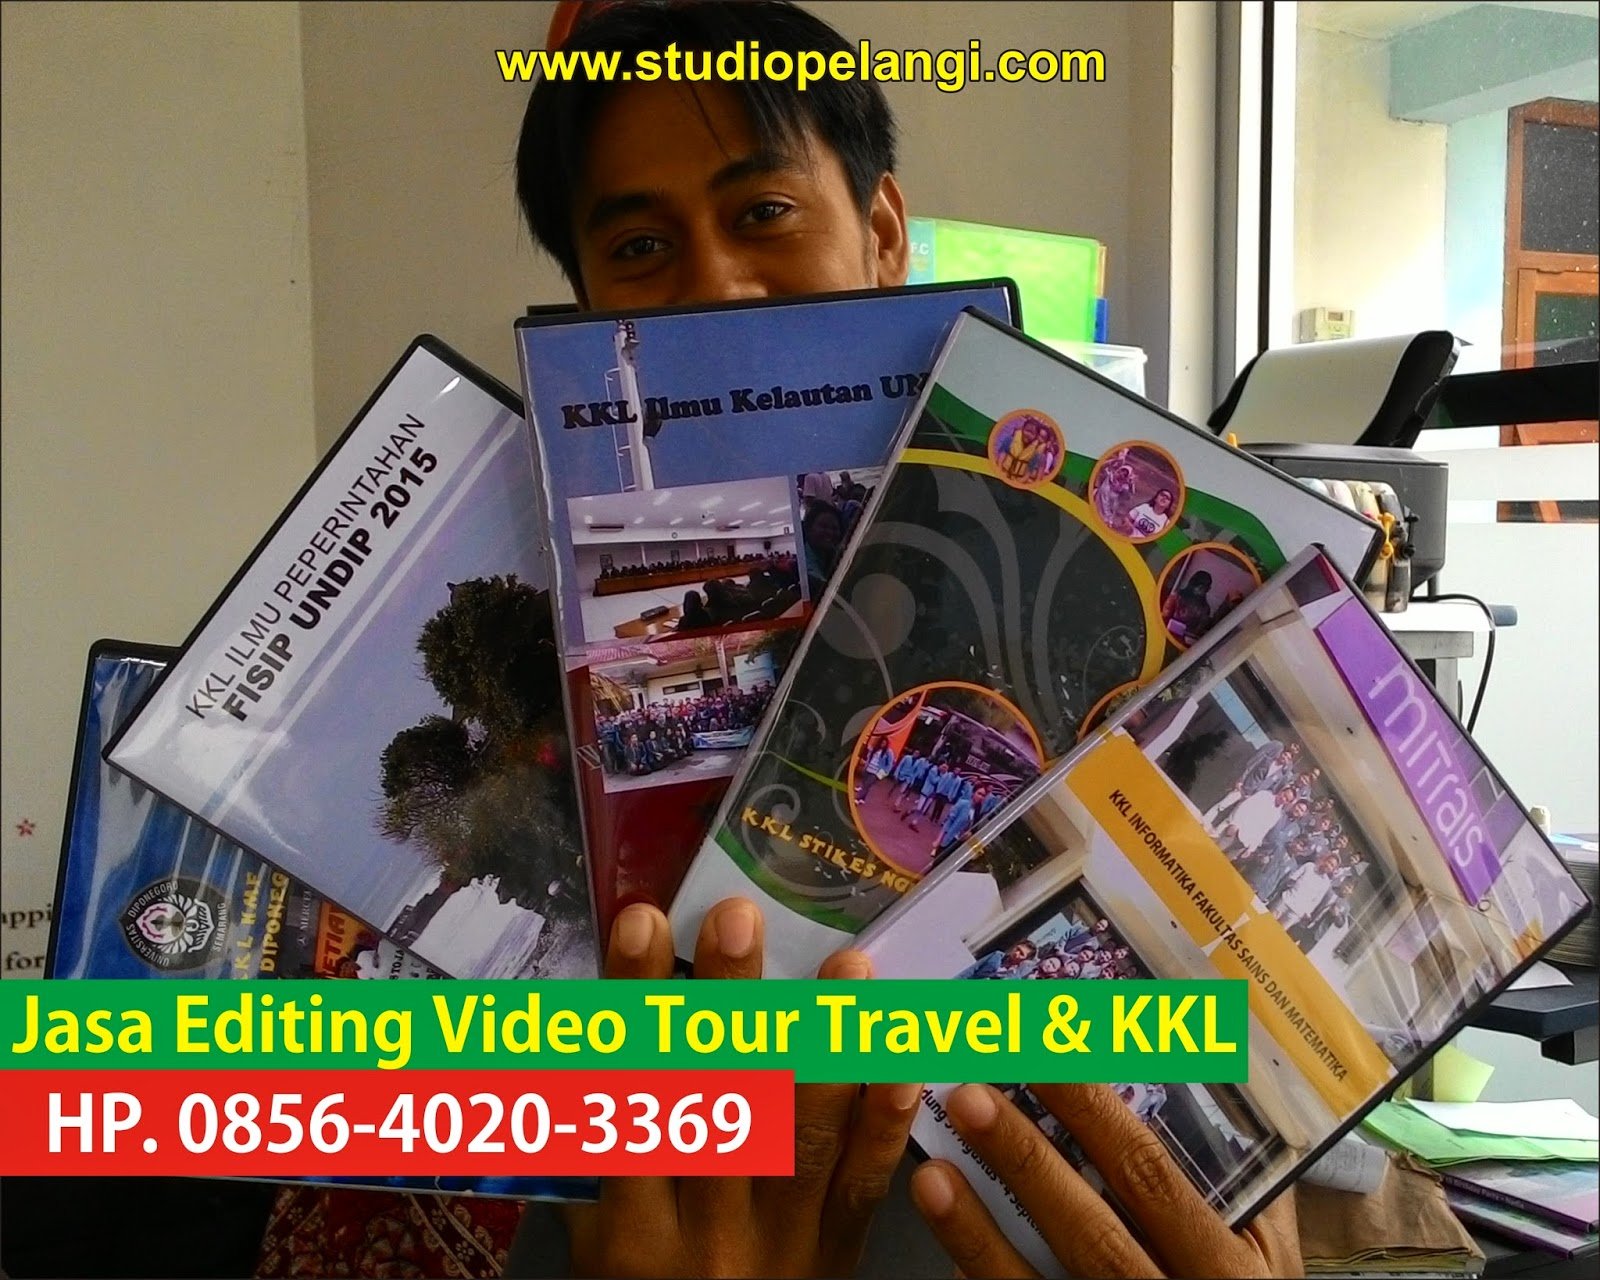 jasa editing video tour and travel semarang